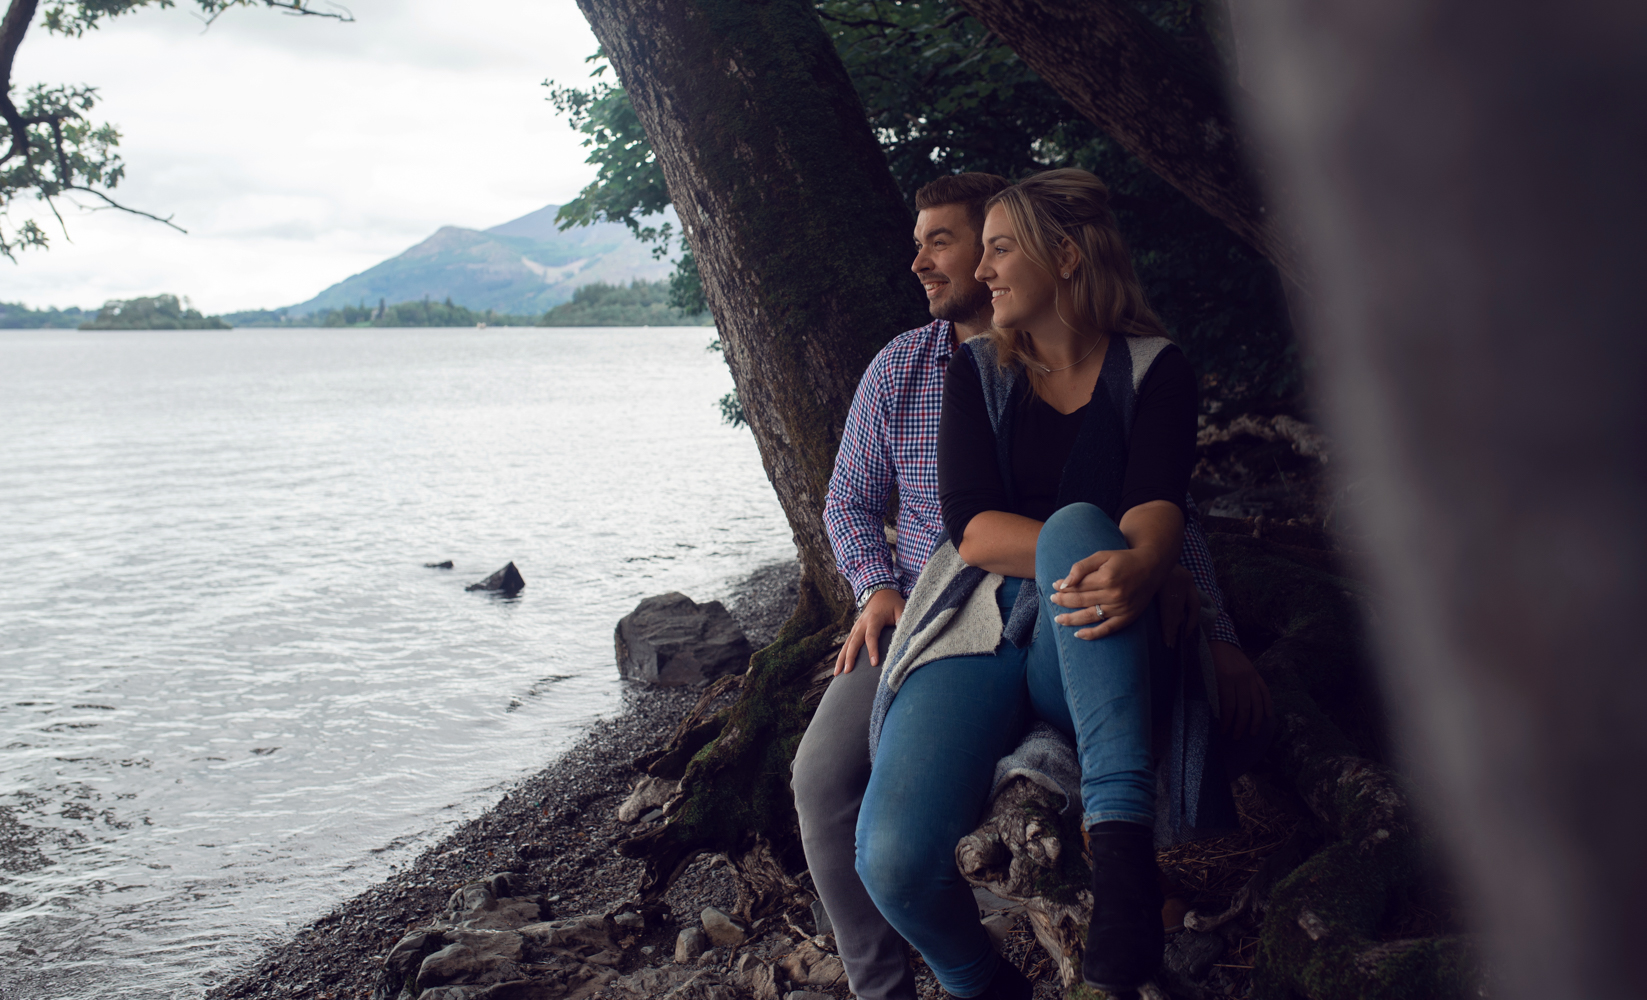 Pre shoot - A couple sitting on a fallen log on the shores of Derwent water in the Lake District